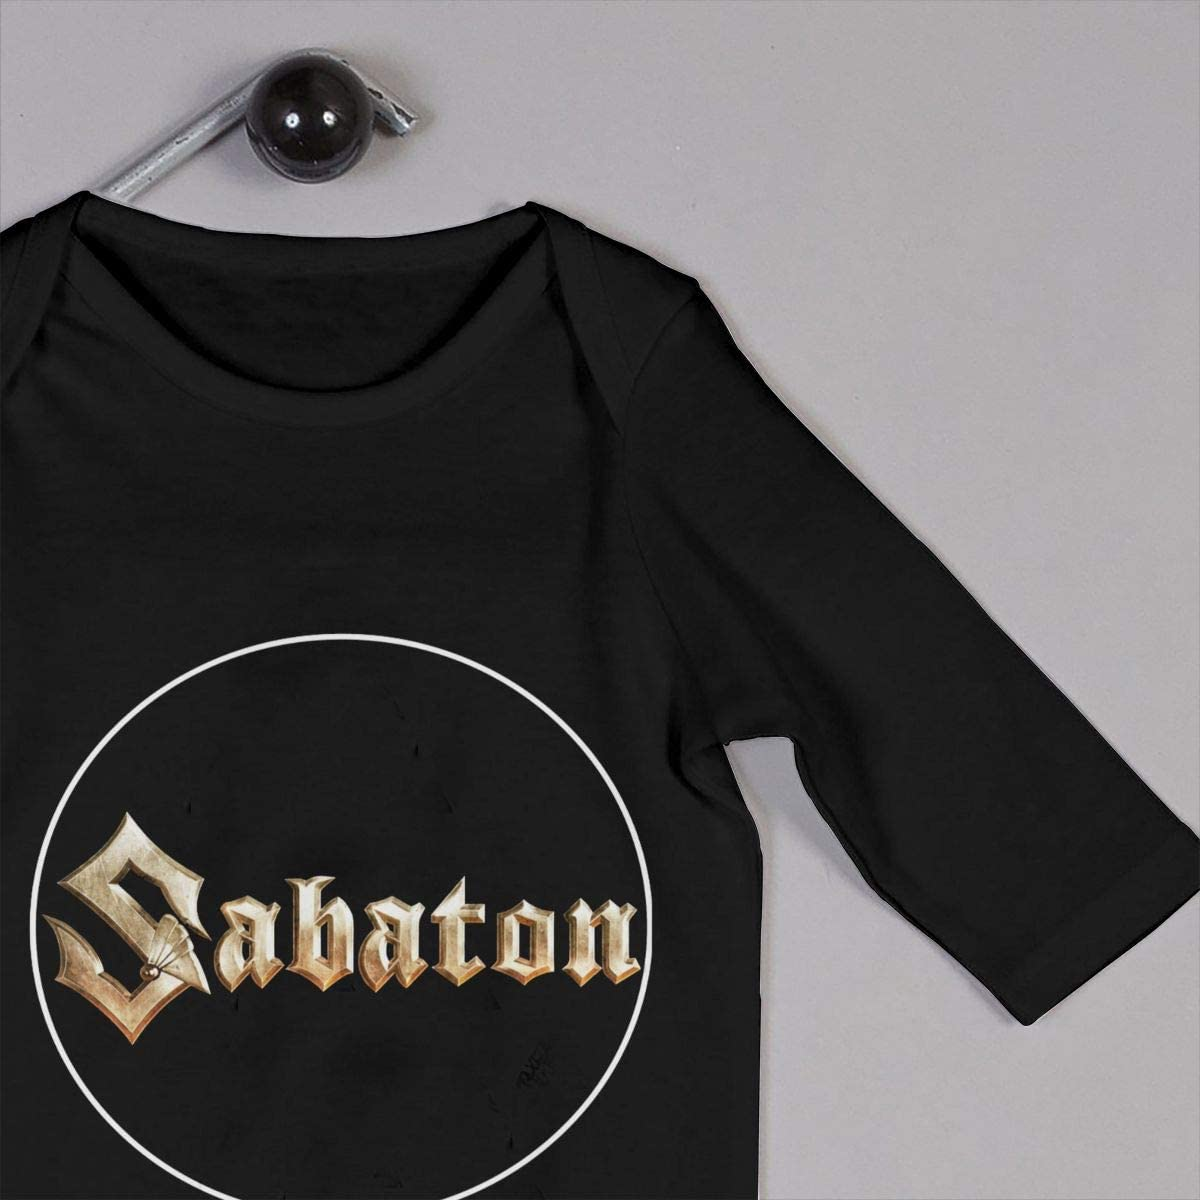 Qq1-asd-store Sabaton The Last Stand Boys//Girls Baby Cotton Long Sleeve Romper Warm Bodysuit